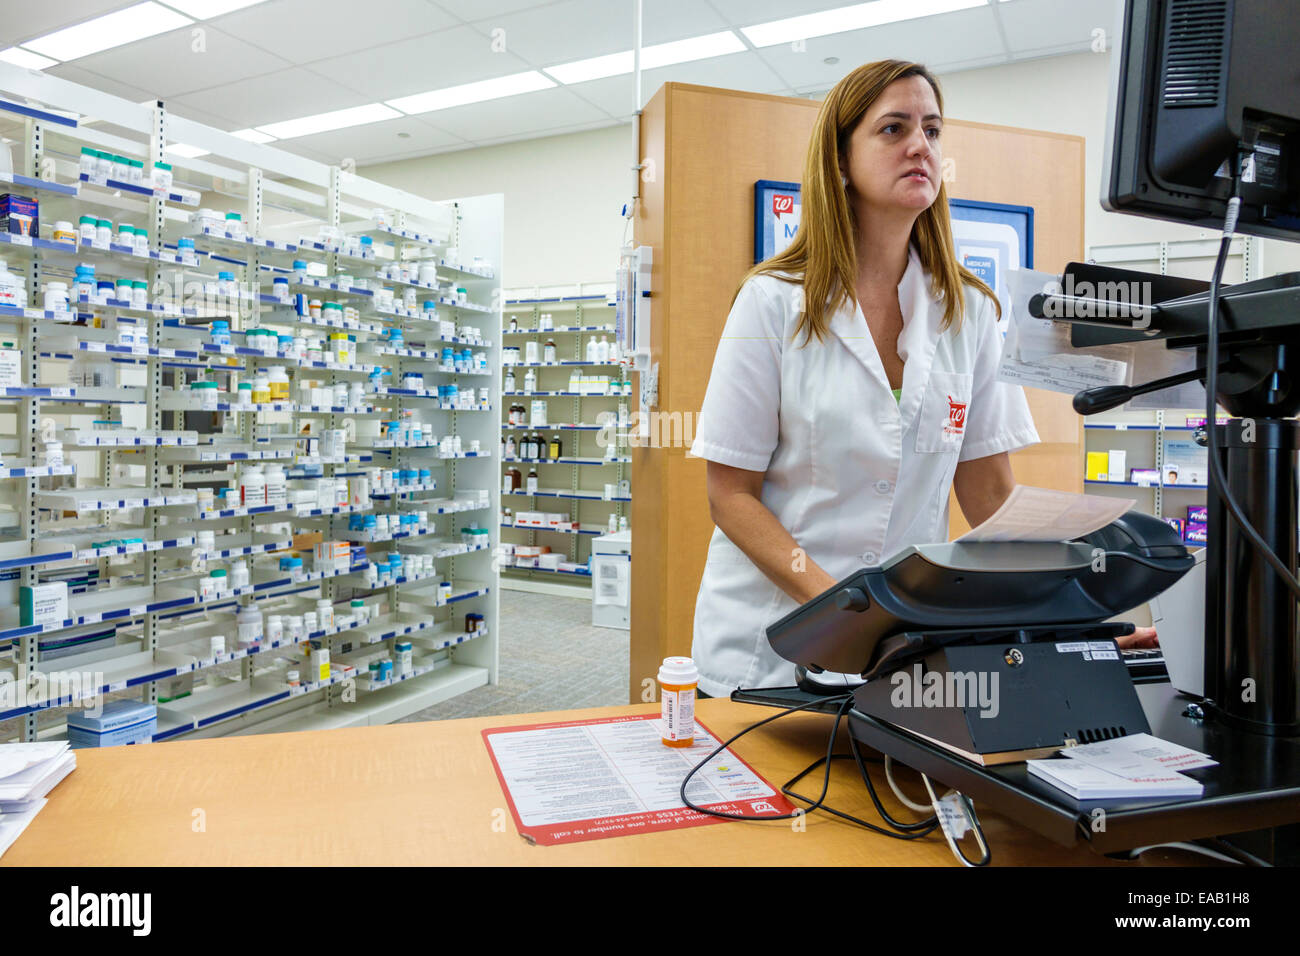 walgreens employee stock photos walgreens employee stock images miami beach florida walgreens pharmacy drugstore pharmacist w filling prescription employee job stock image